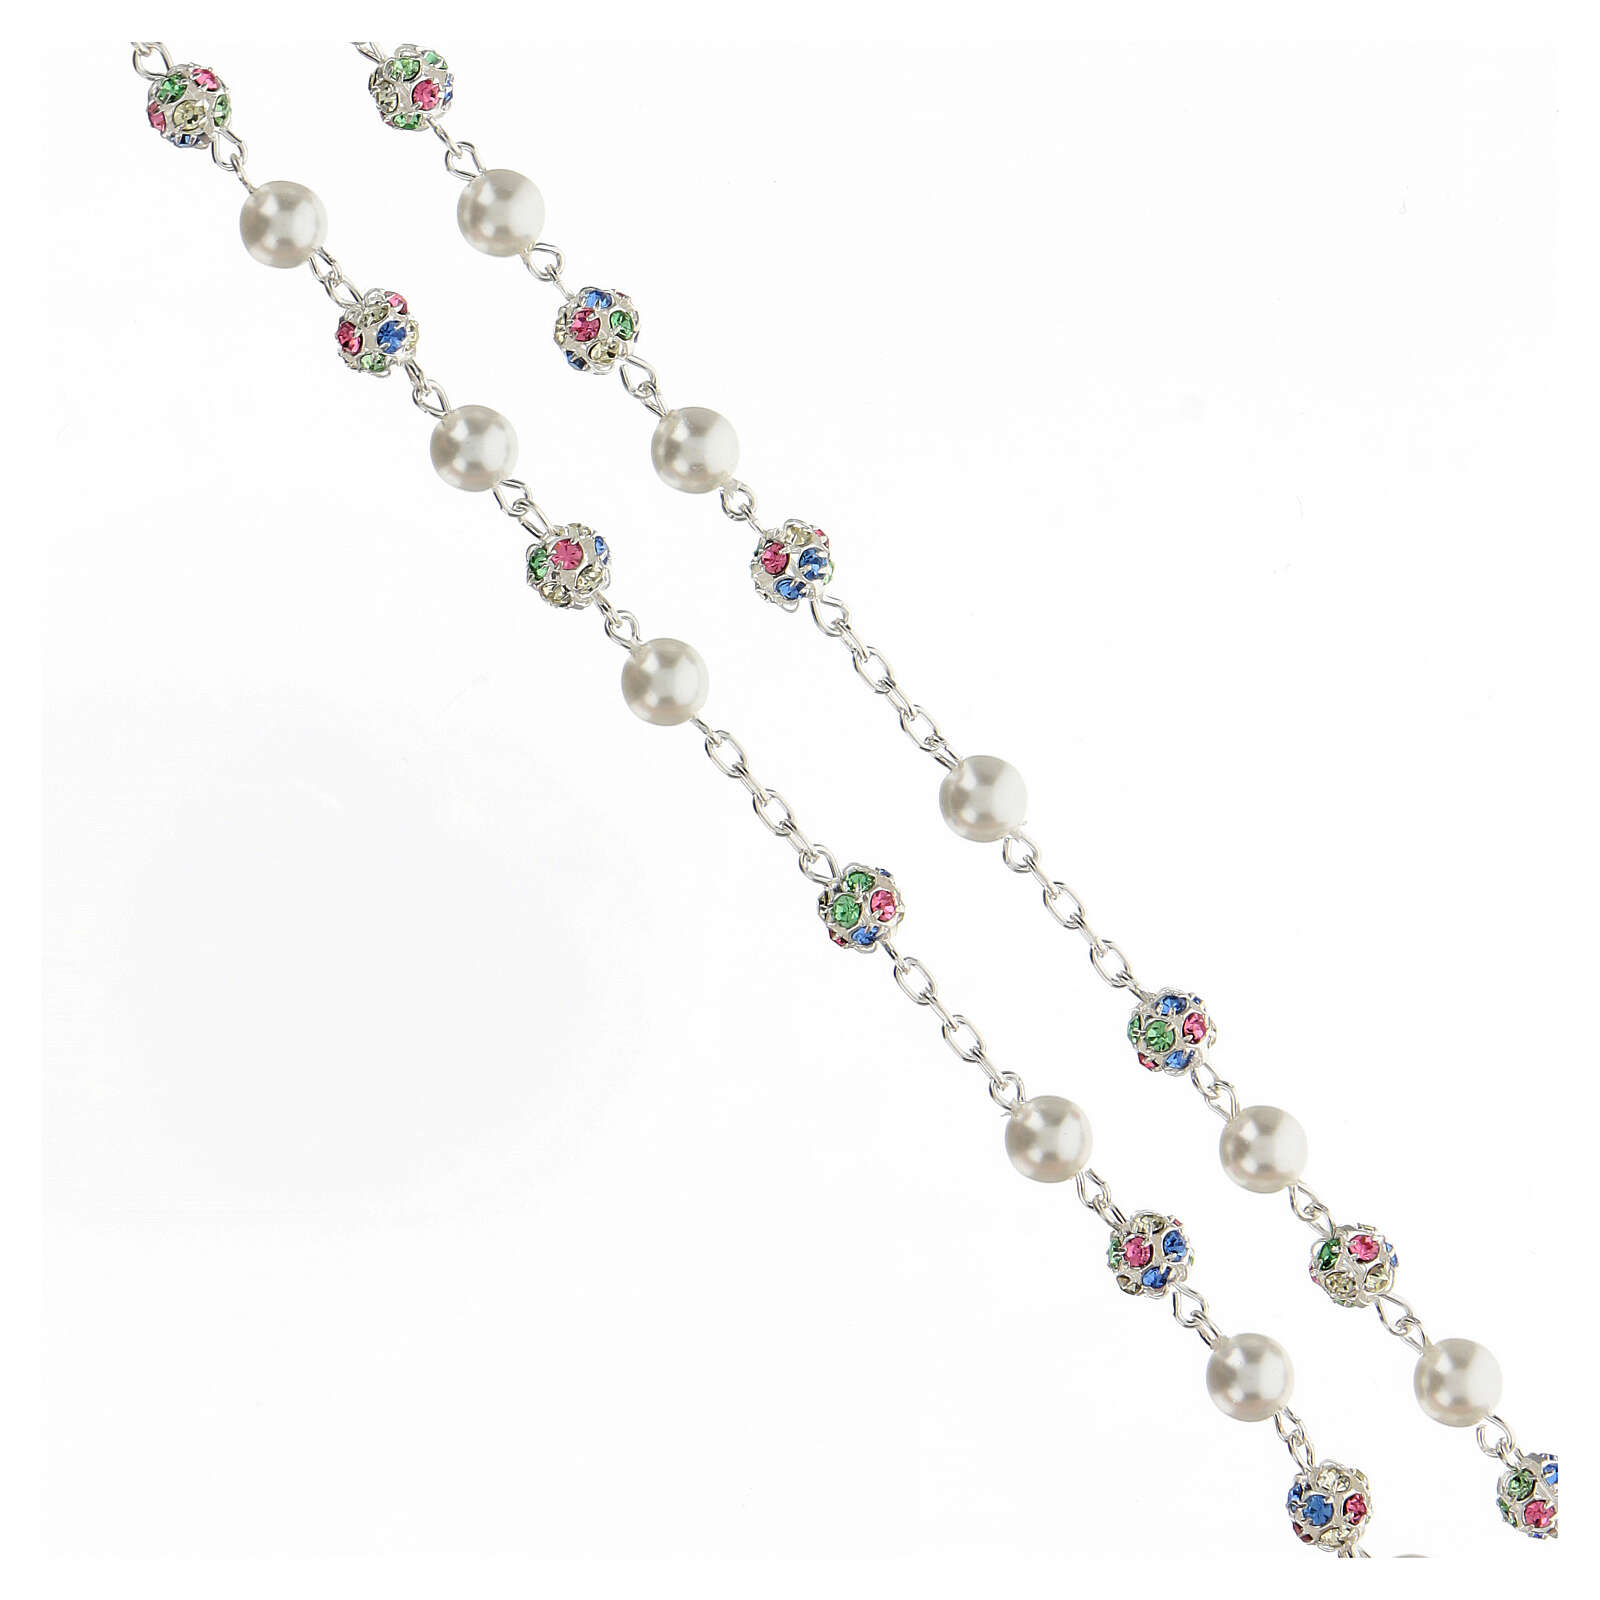 Chapelet strassball multicolores perles 6 mm argent 925 4